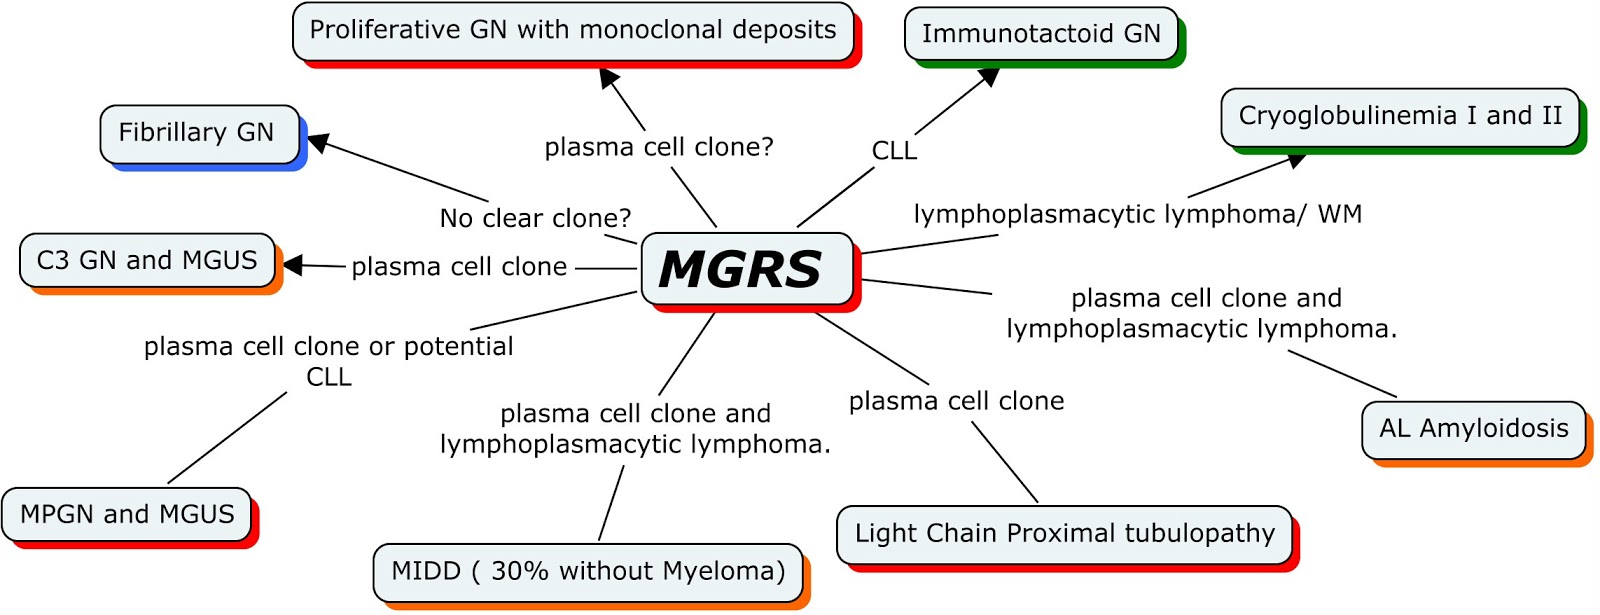 Concept Map: Monoclonal Gammopathy of Renal Significance (MGRS)